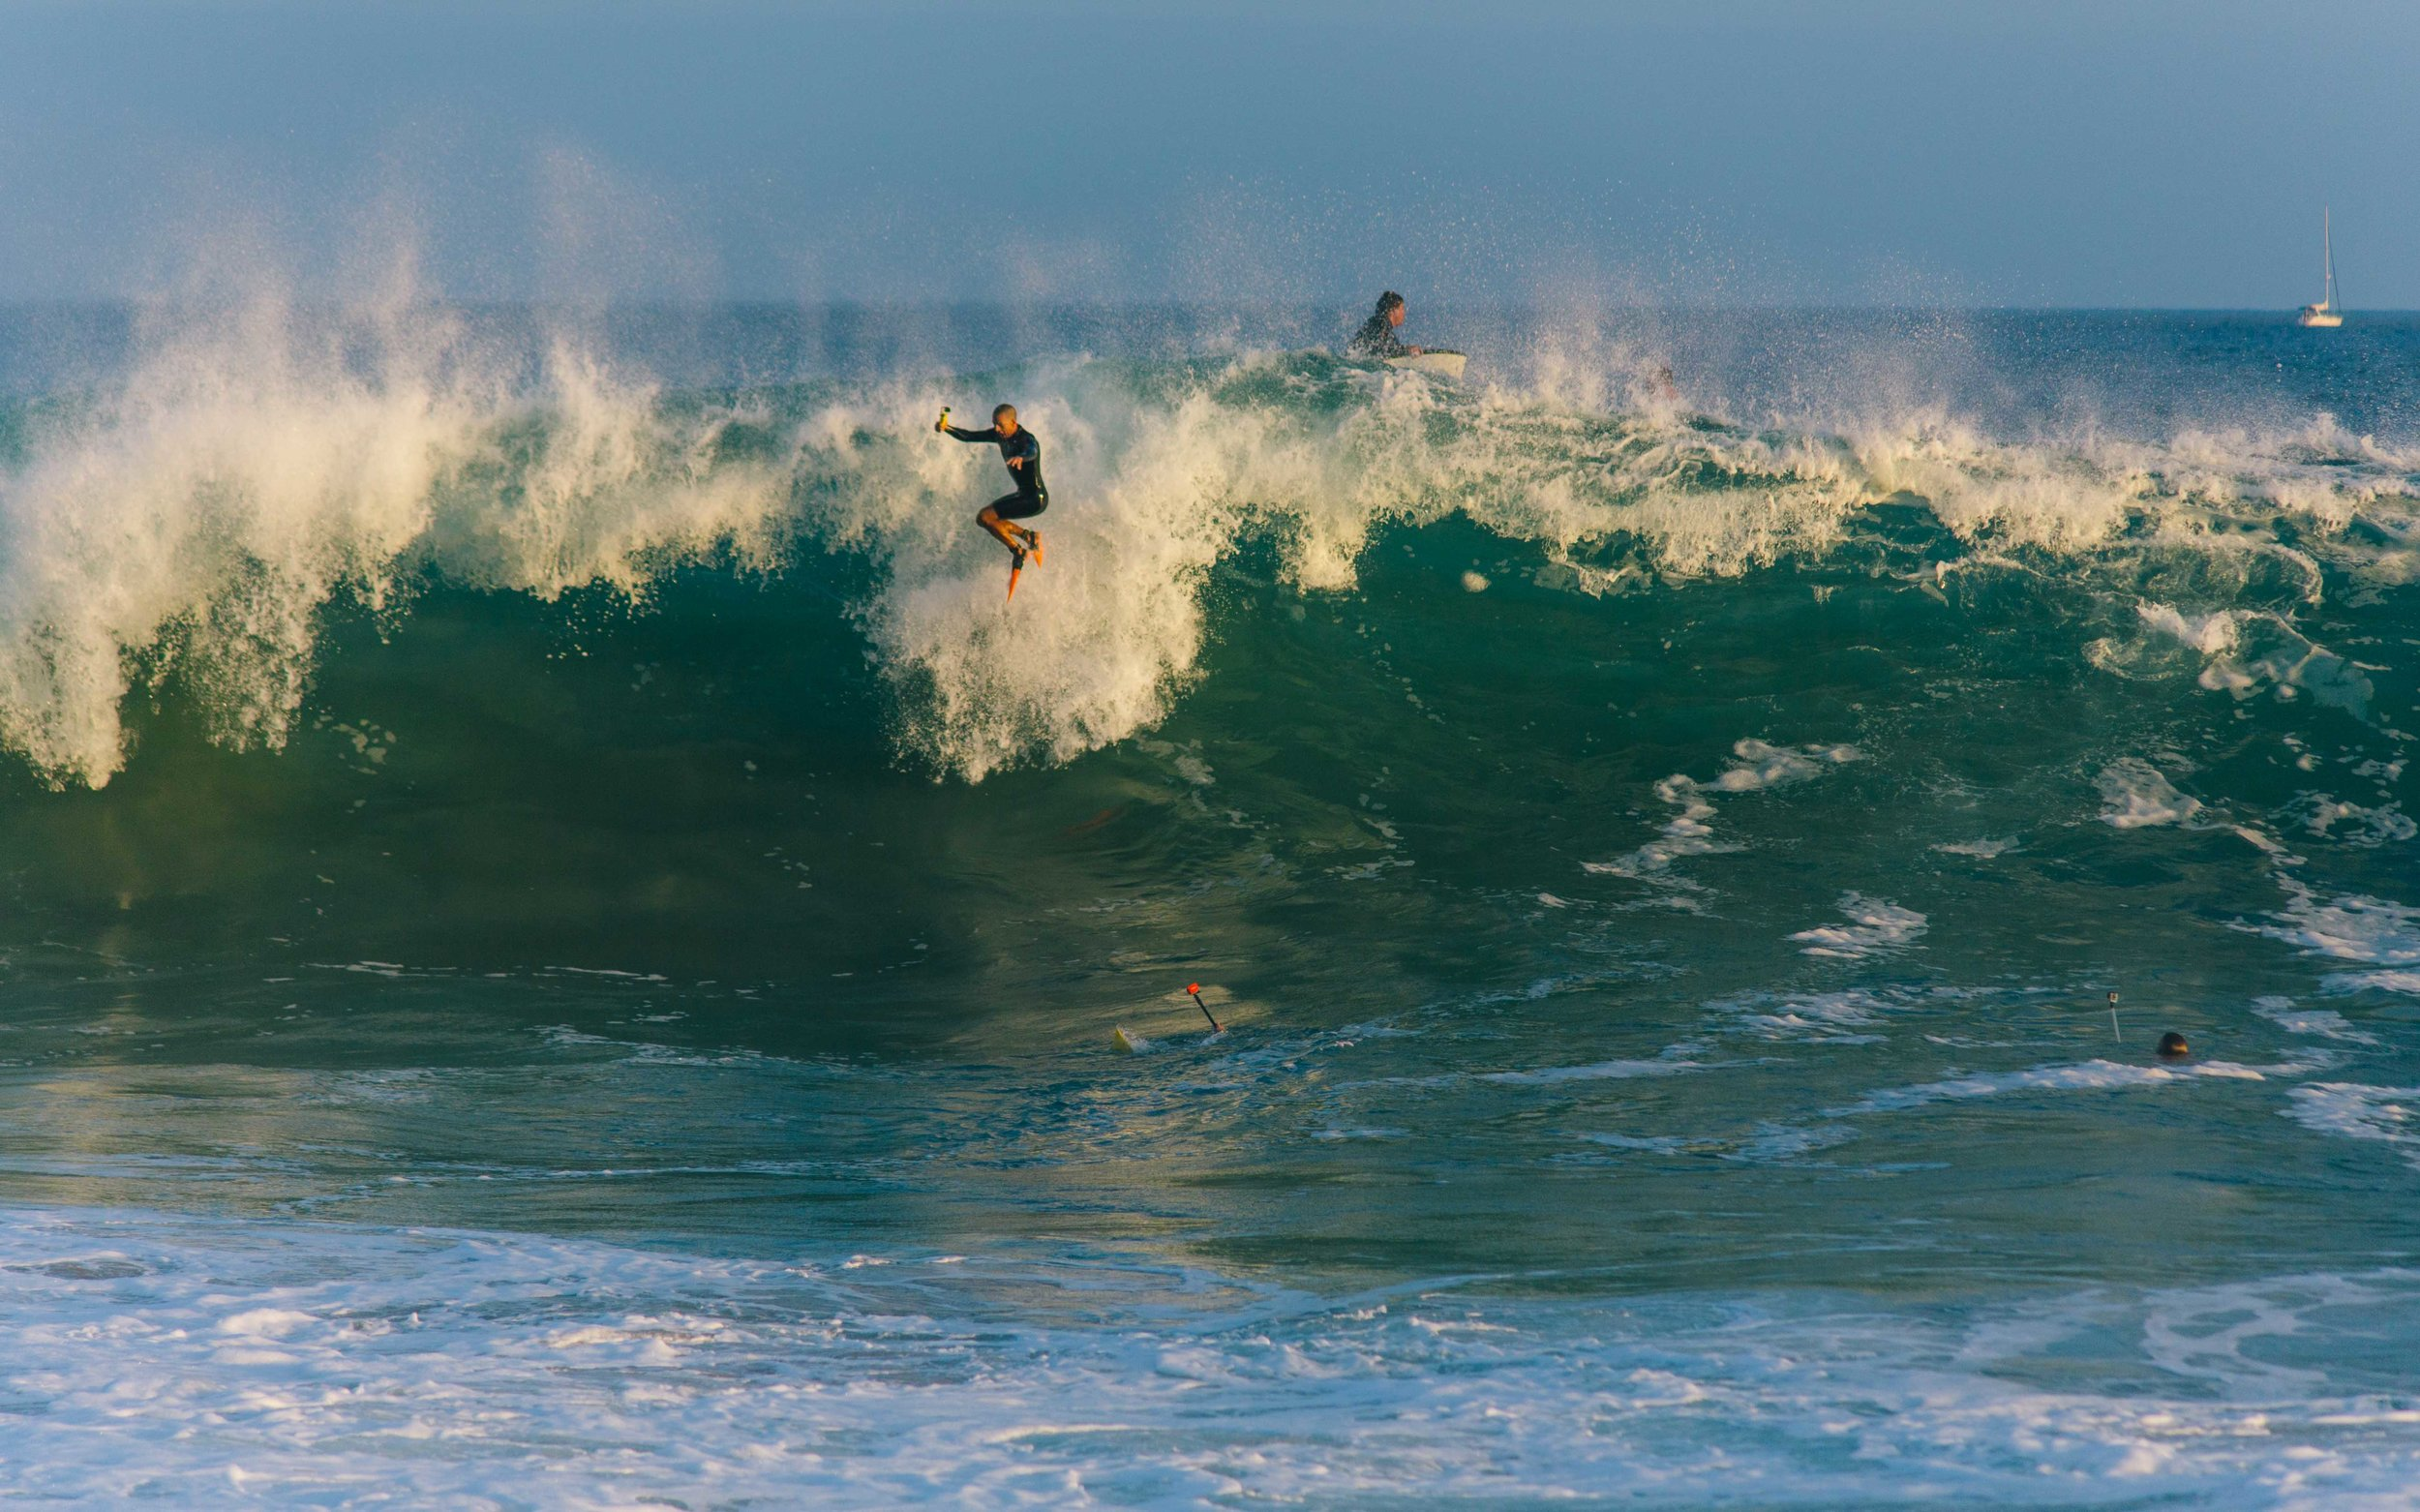 20140707-thewedge-017-sm.jpg